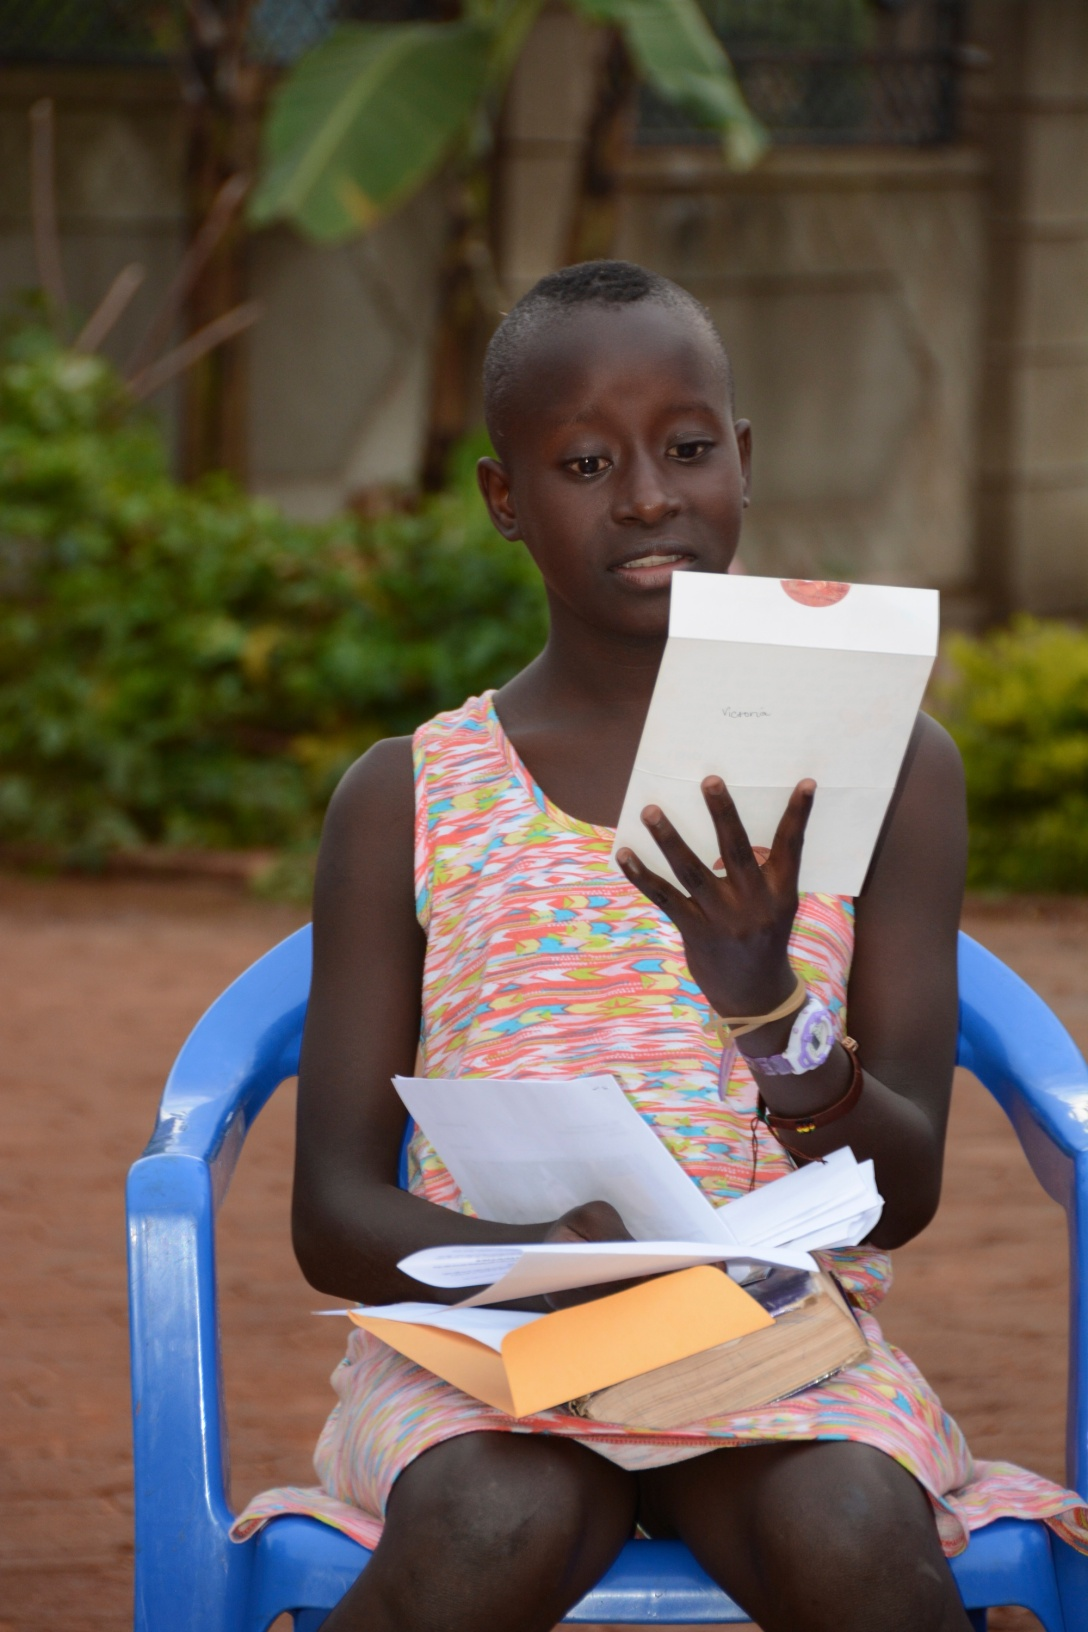 Angela is reading letters from her sponsors. Oh the kids were so happy to receive mail!